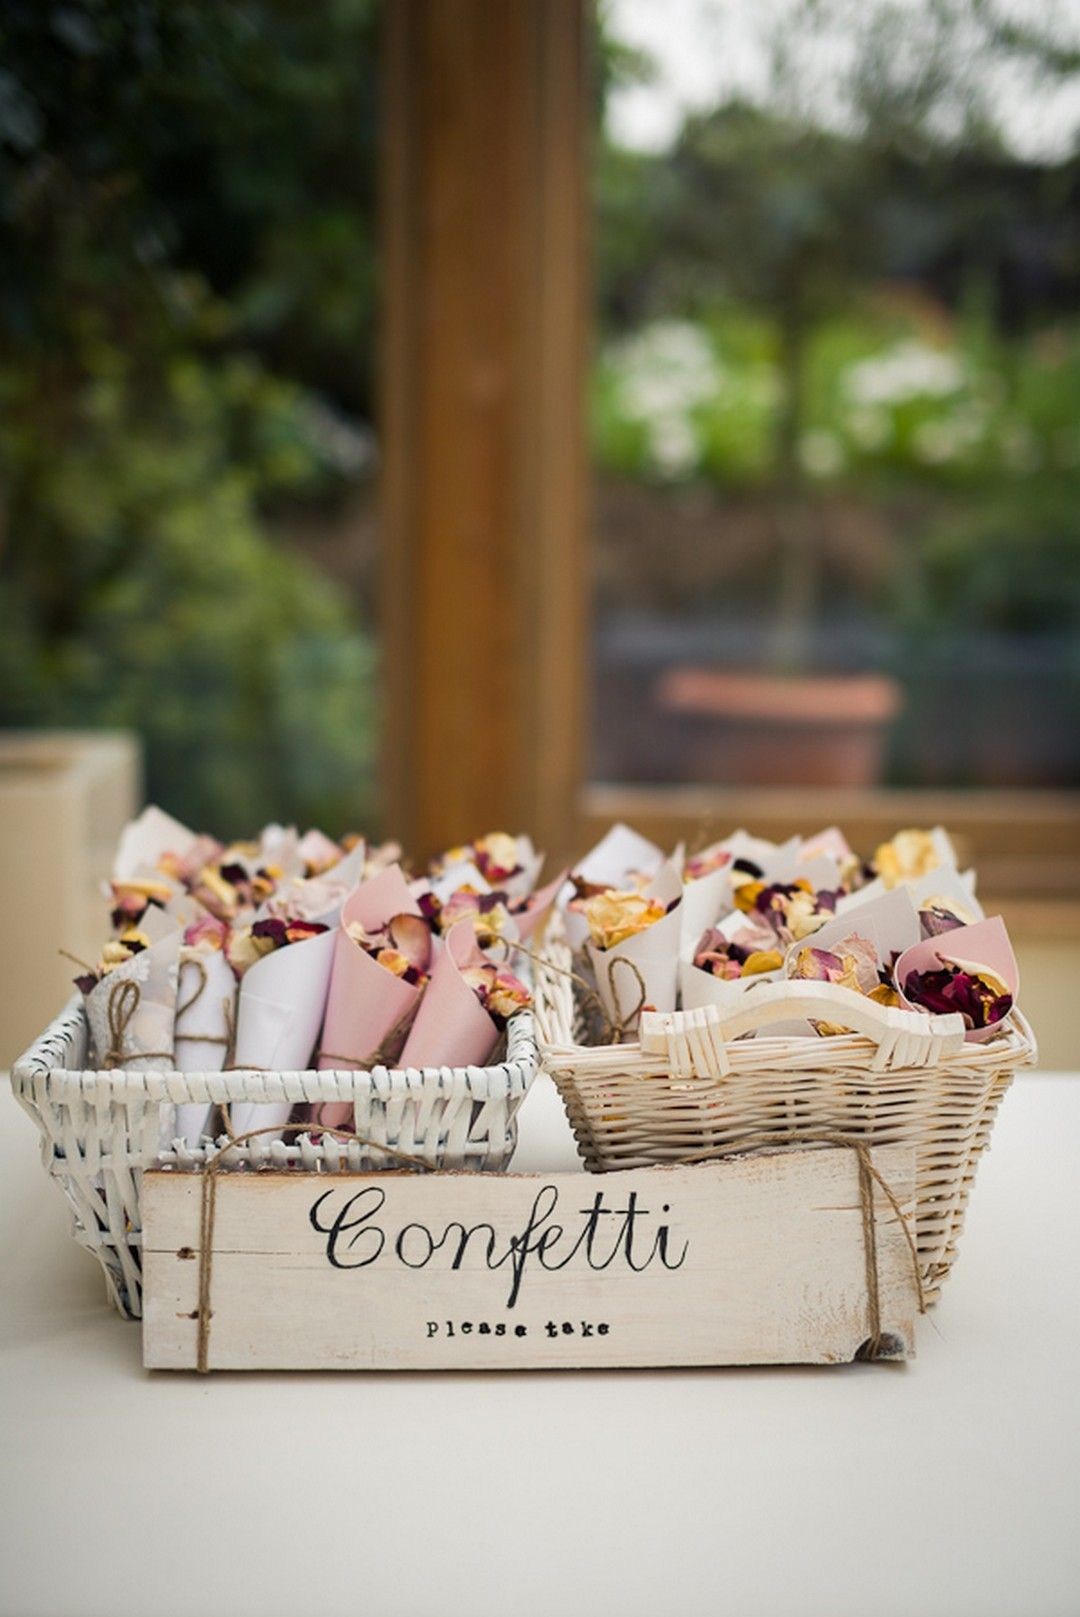 DIY Wedding Decoration Ideas to Save Budget for Your Big Day